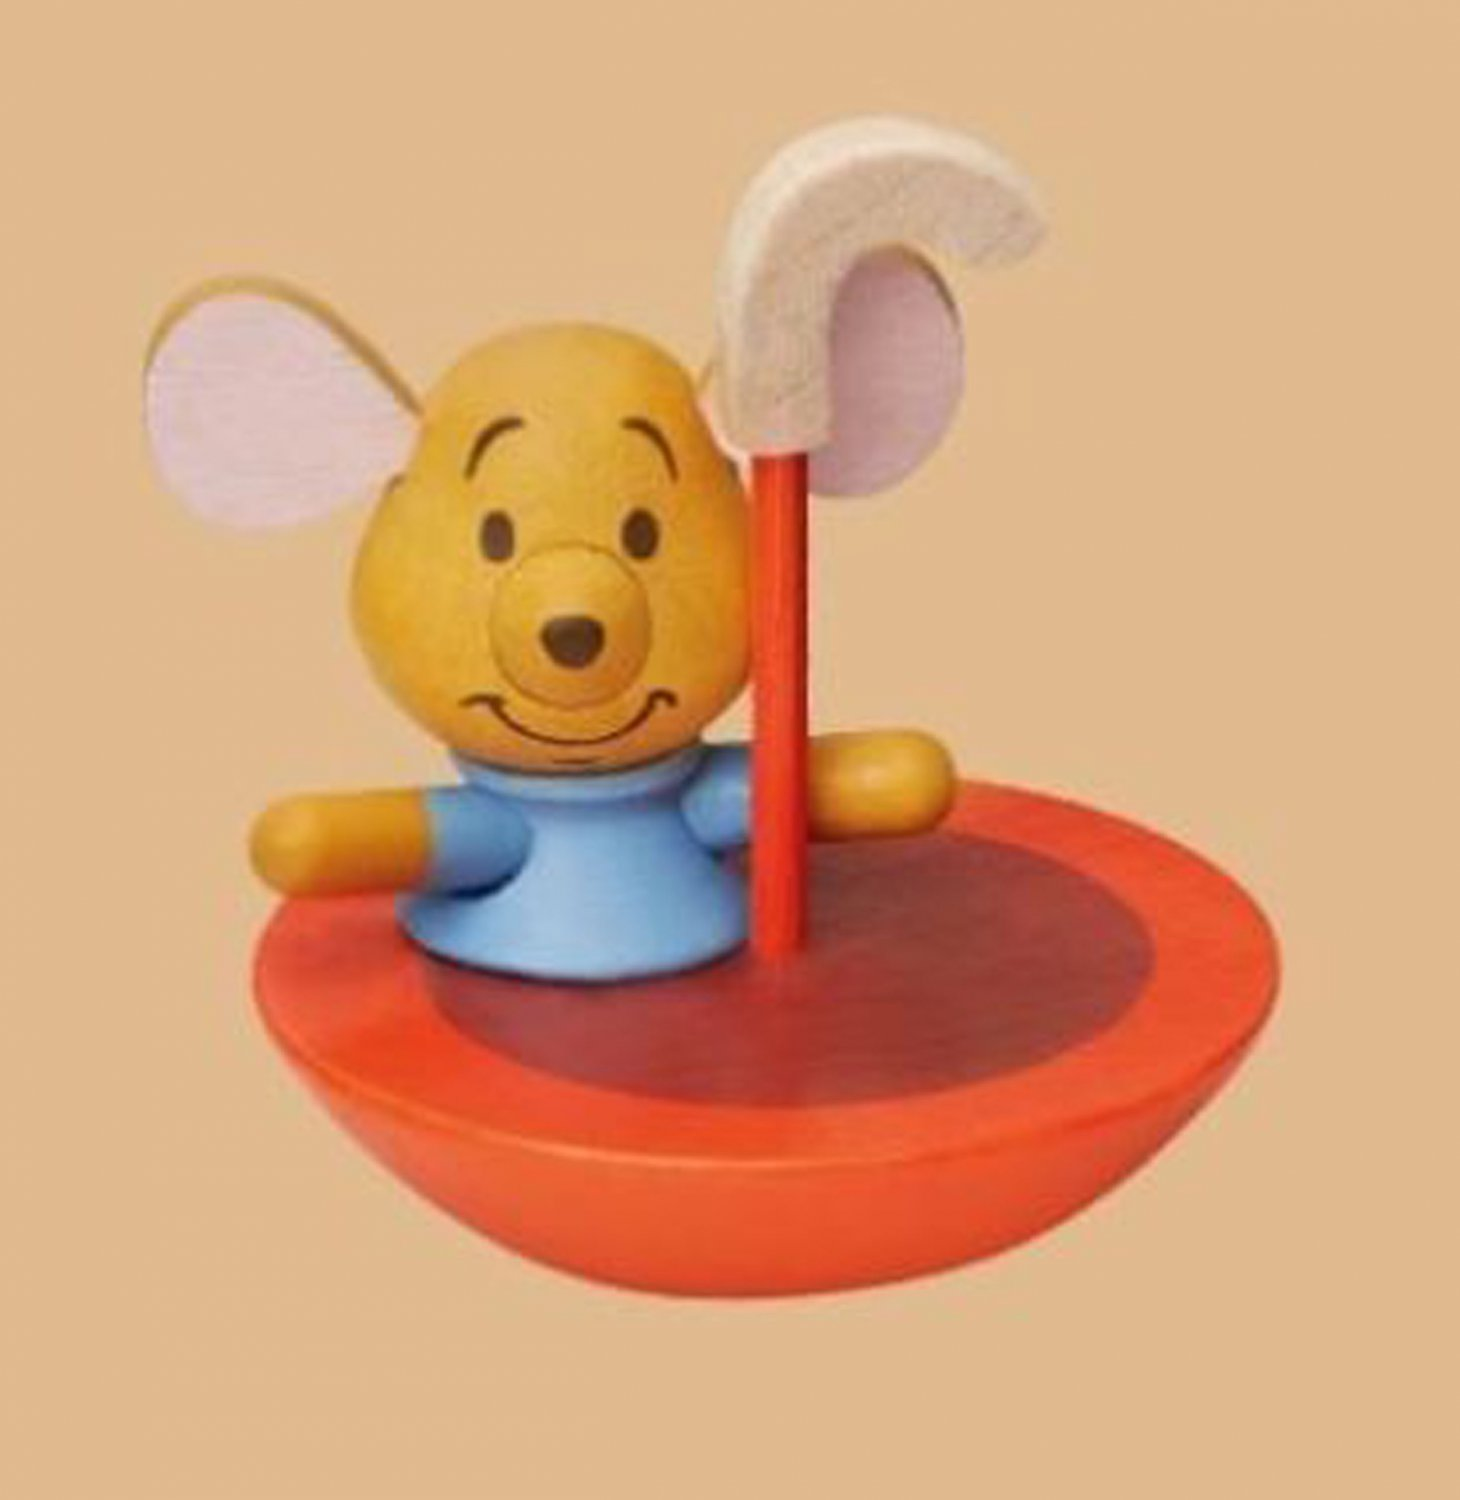 2017 Hong Kong 7-11 Disney Winnie the Pooh w/ Friends ROO Forest Collection Wooden Figurine